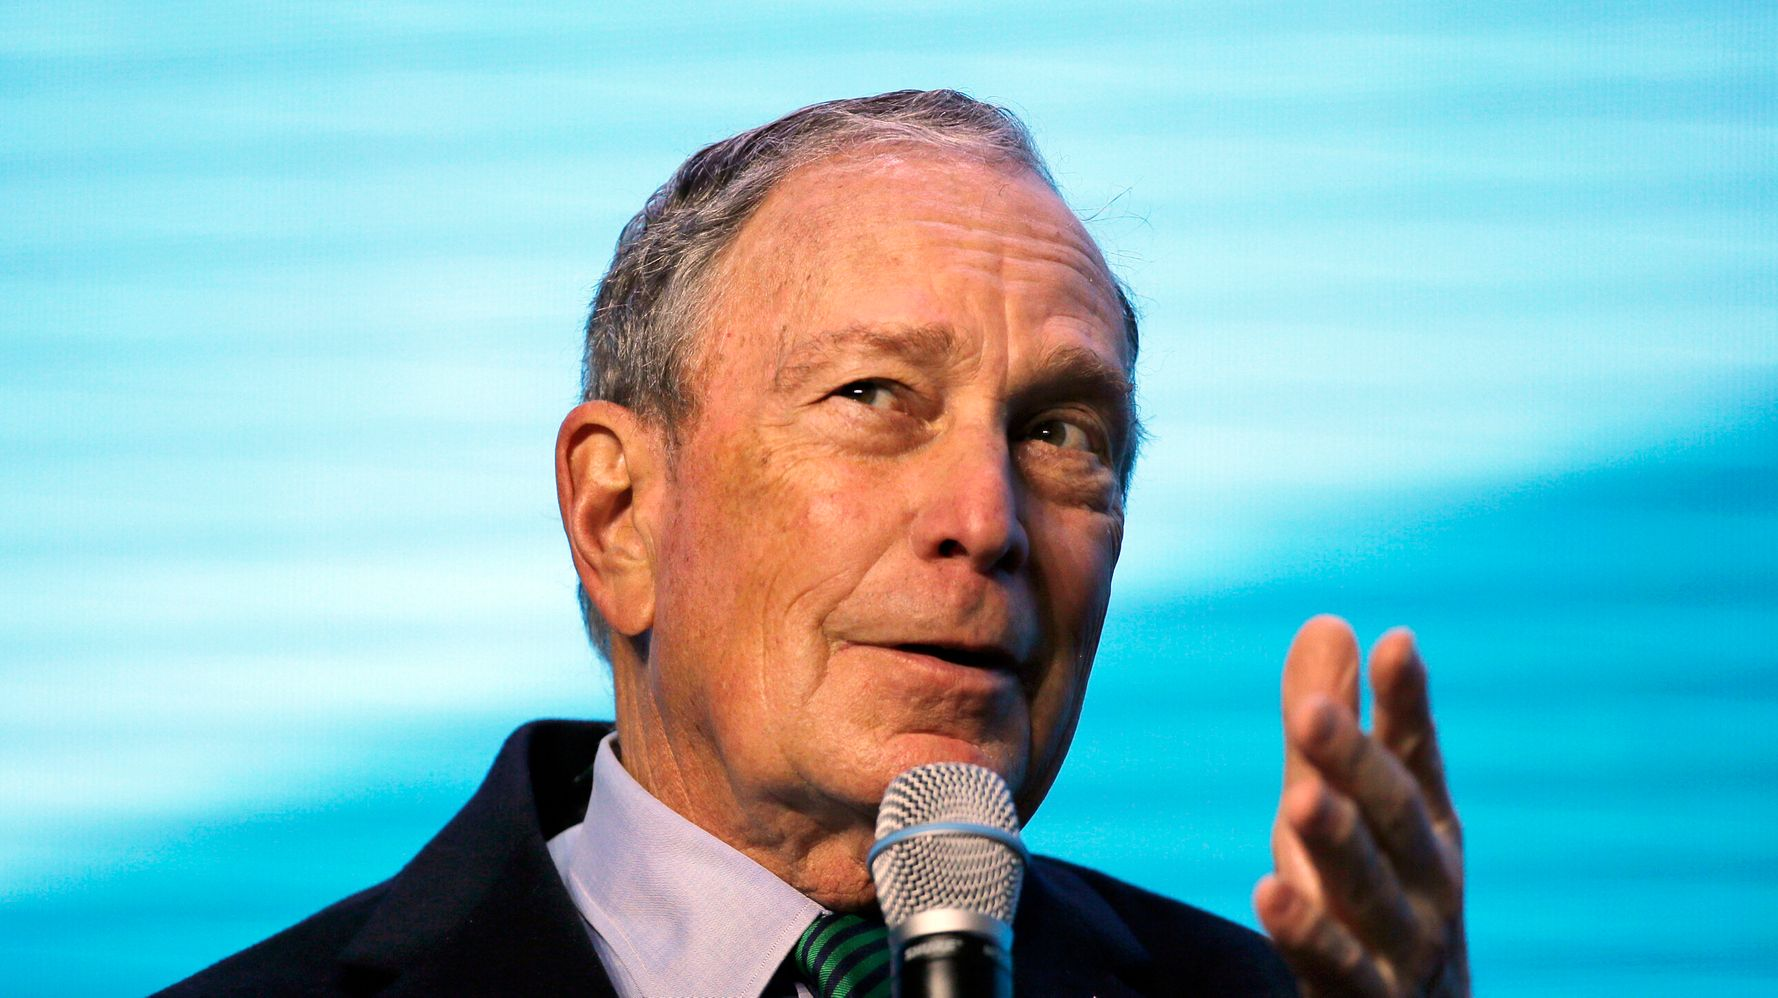 Westlake Legal Group 5e0a9eb224000053245a4970 Twitter Critics Mock Bloomberg's 'Open Office' Vision For White House East Room